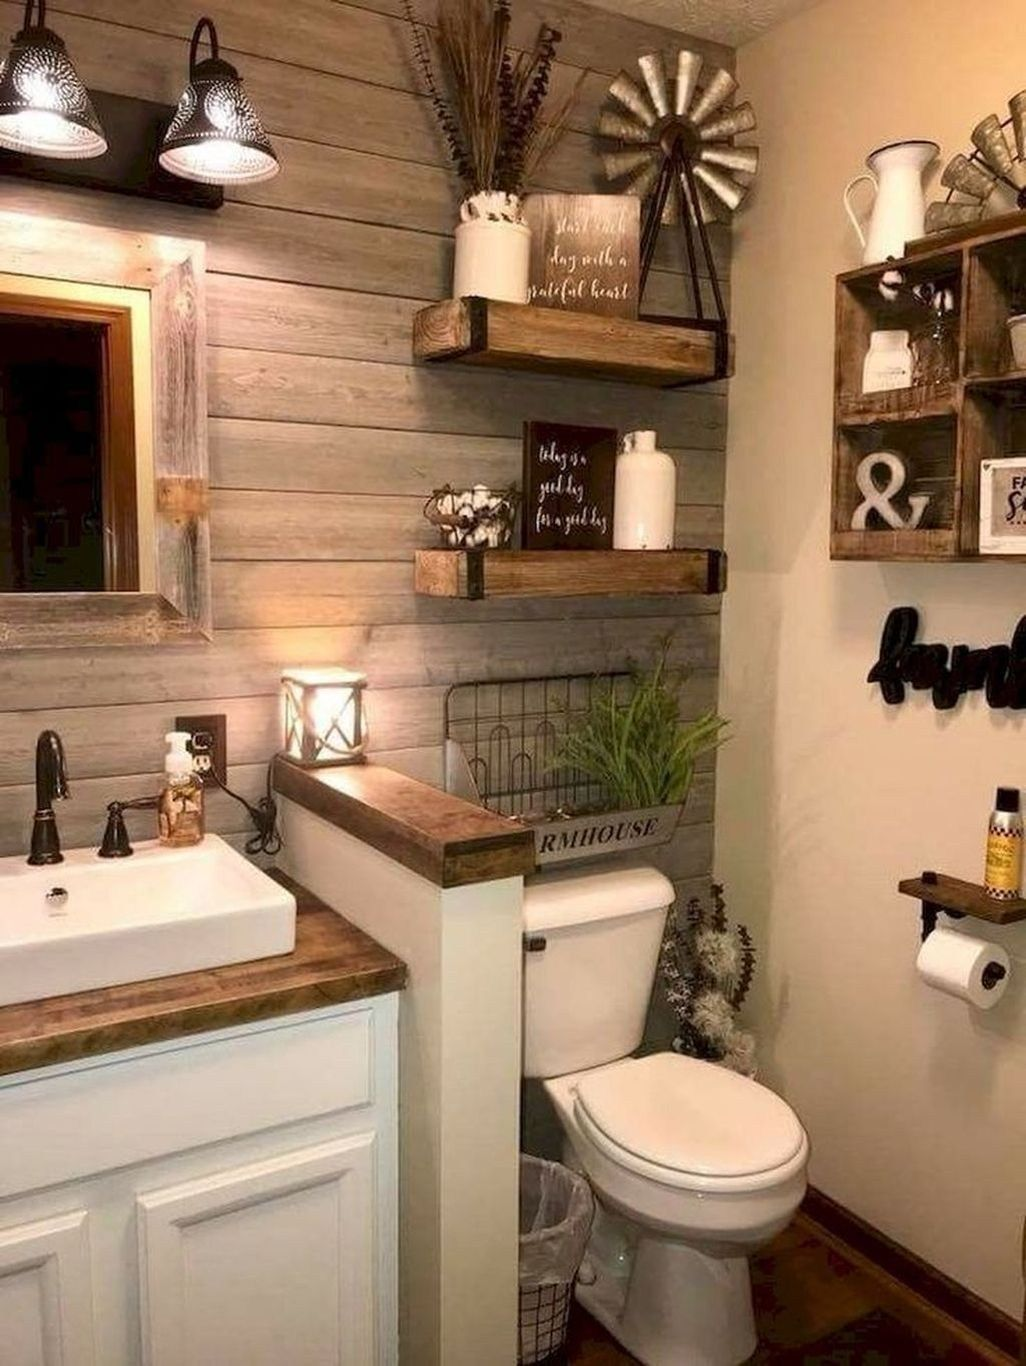 Decorative Rustic Storage Projects For Your Bathroom: Modern Farmhouse Bathroom, Small Bathroom, Home Remodeling